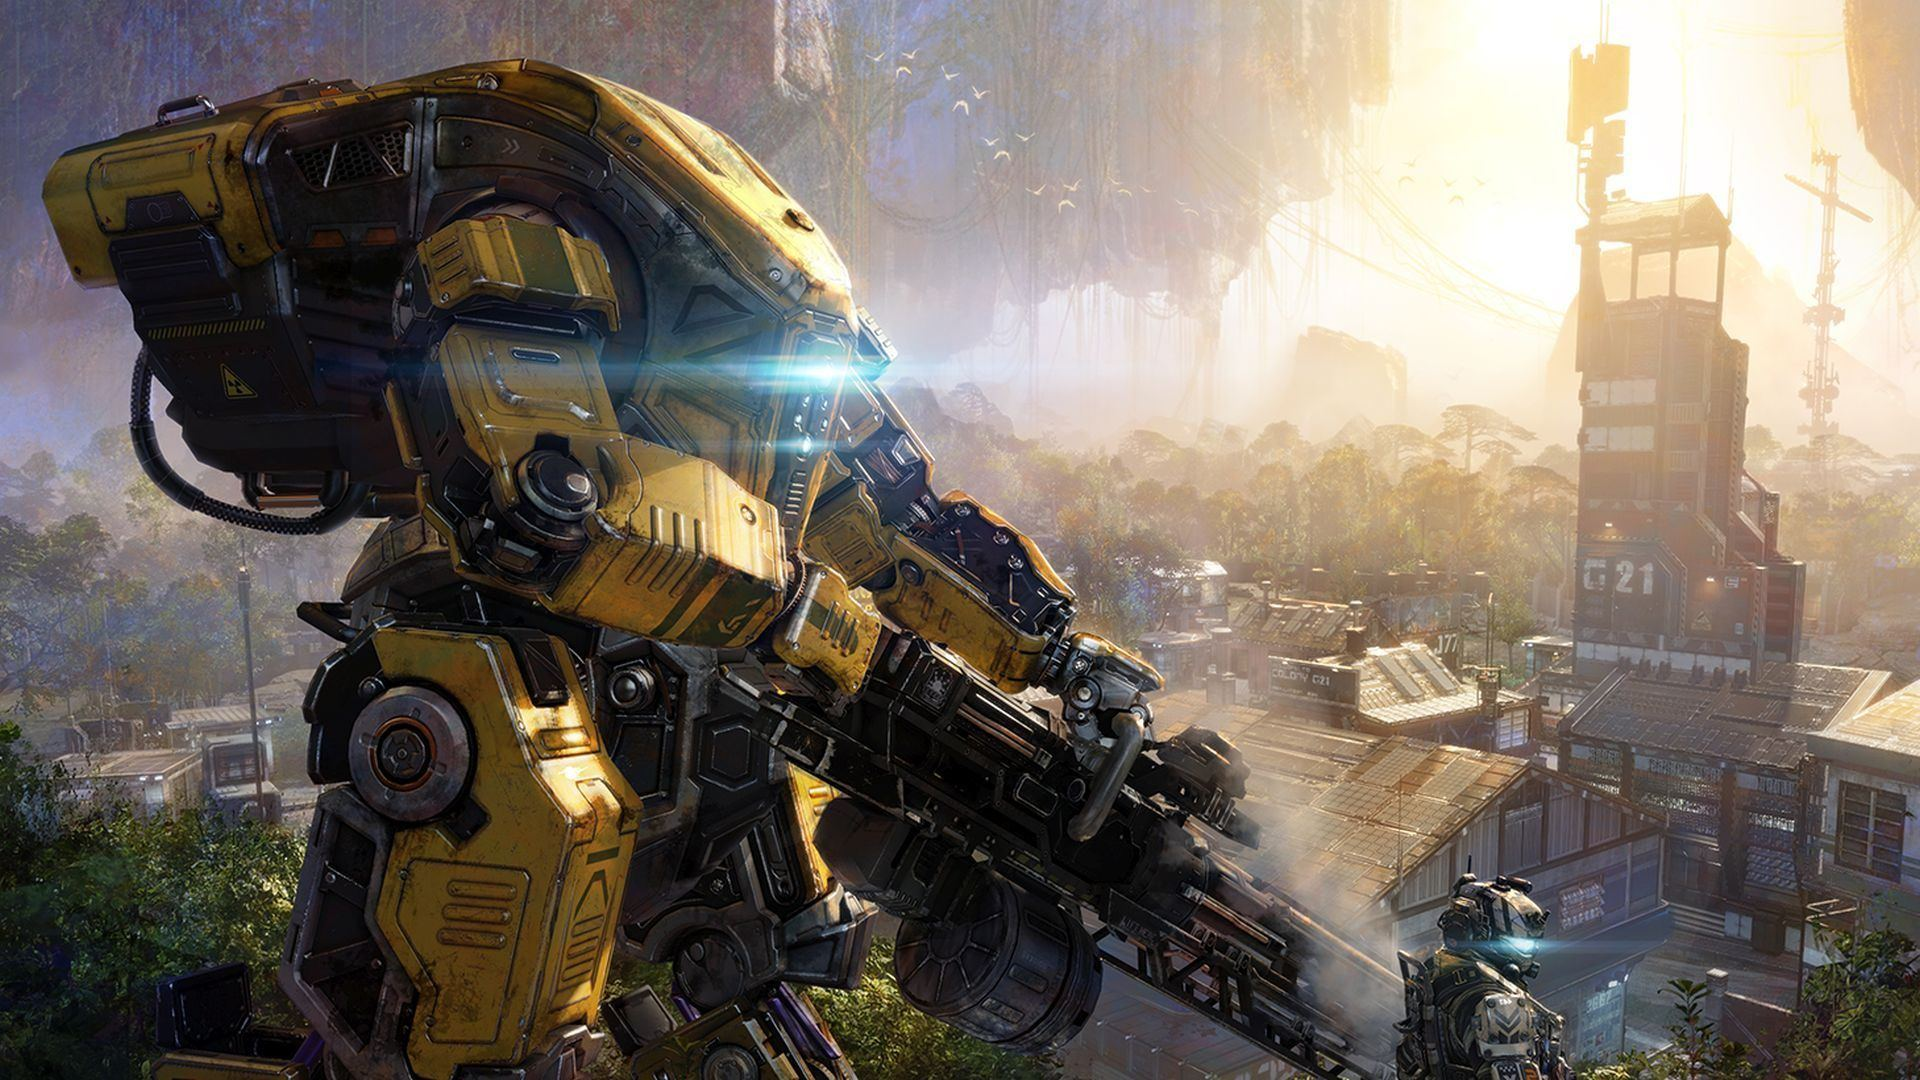 Titanfall 2 is now free through EA and Origin Access - Game